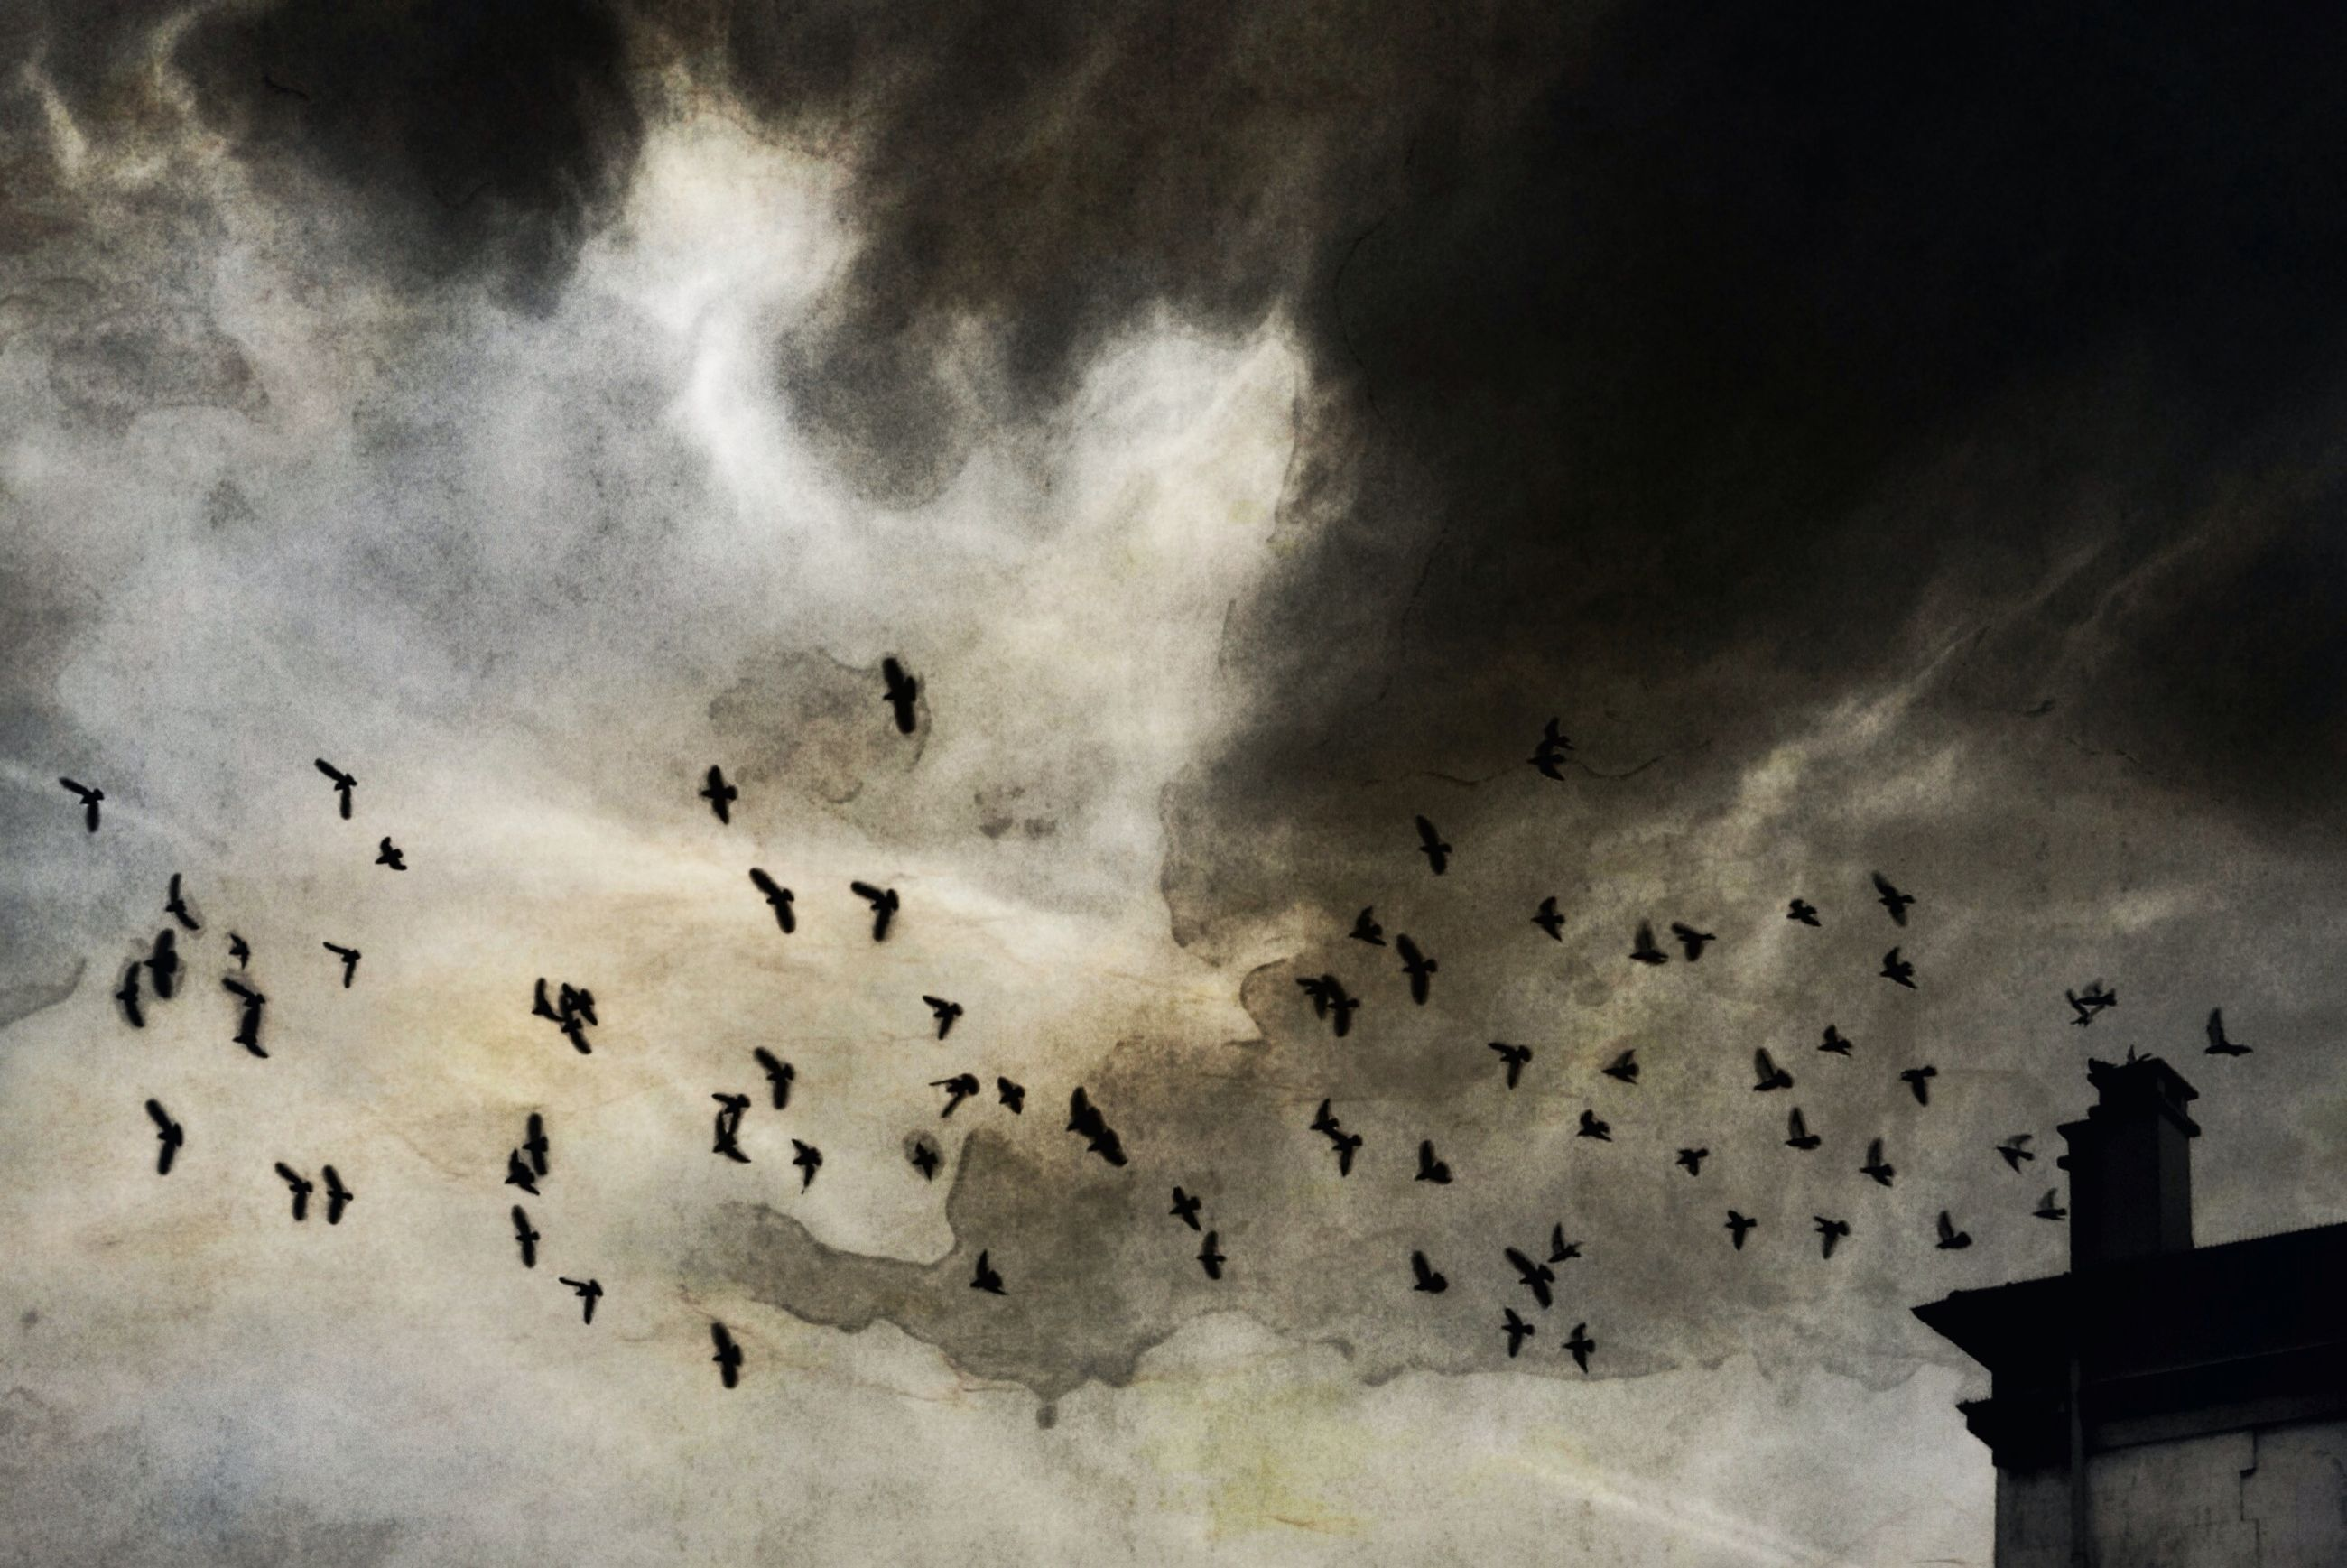 bird, animal themes, flying, animals in the wild, flock of birds, wildlife, sky, low angle view, cloud - sky, silhouette, cloudy, built structure, nature, weather, outdoors, dusk, mid-air, overcast, architecture